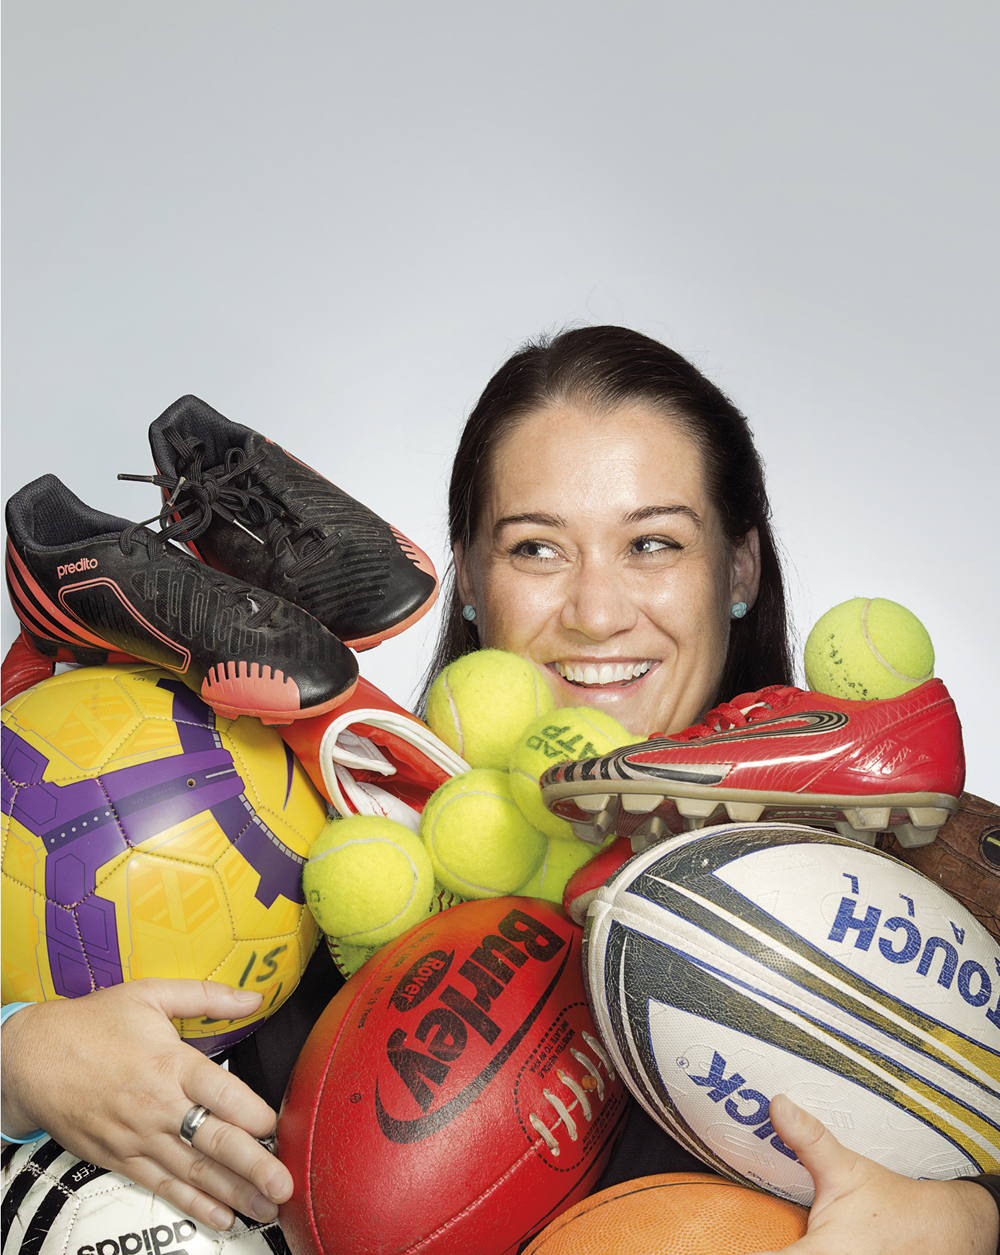 Portrait of Nicki Bardwell holding sports equipment